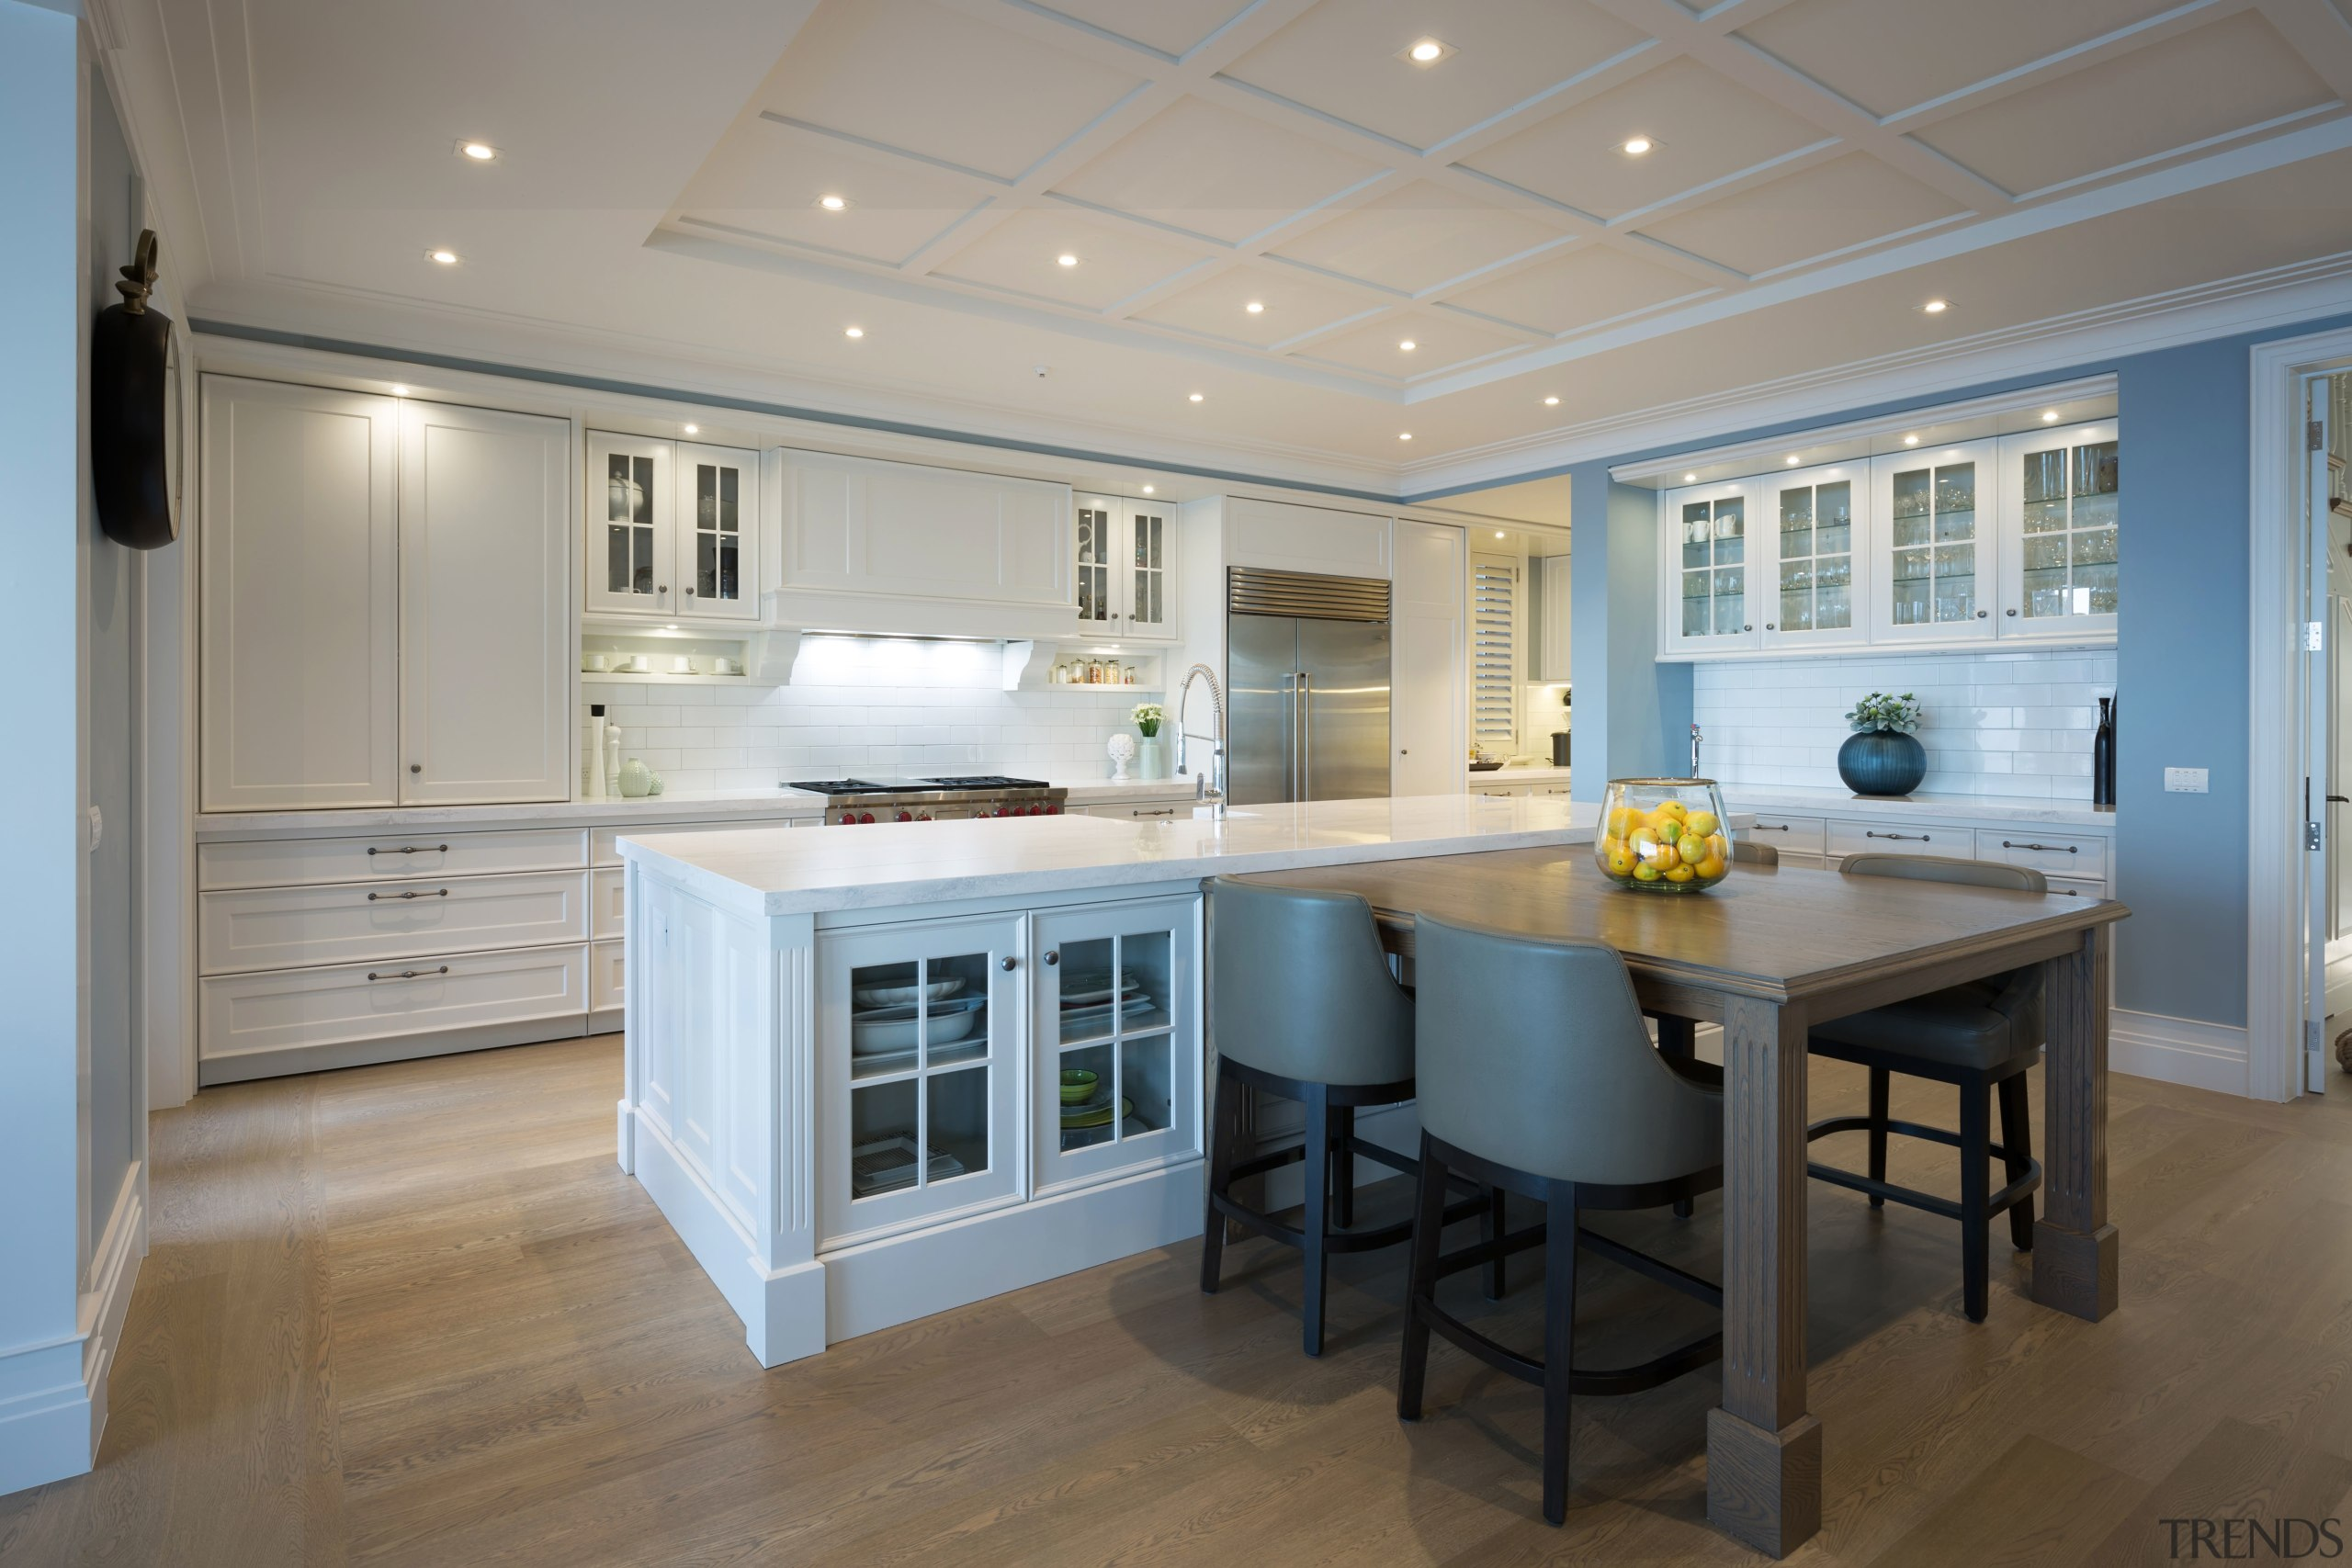 This kitchen combines traditional woodworking detail with large cabinetry, ceiling, countertop, cuisine classique, floor, flooring, home, interior design, kitchen, real estate, room, wood flooring, gray